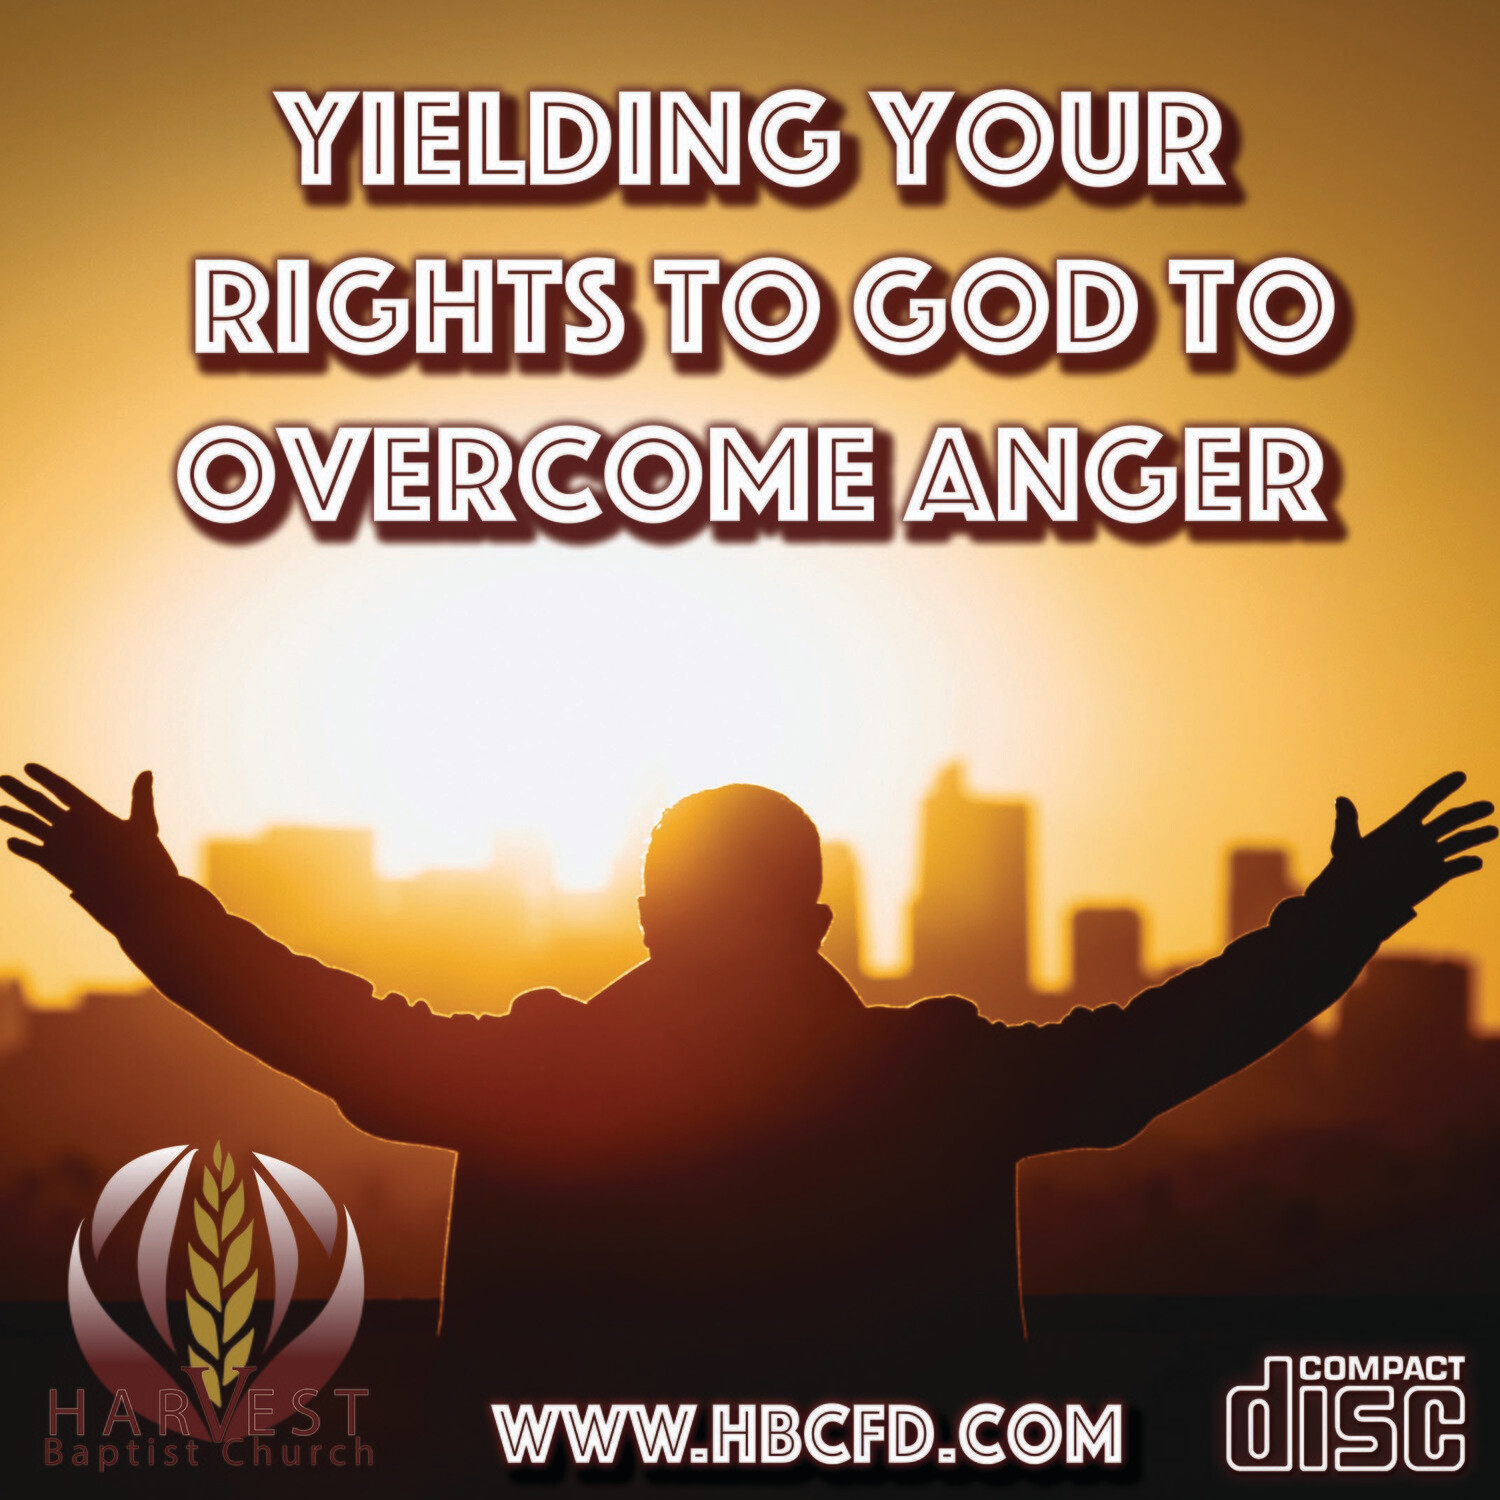 Yielding Your Rights to God to Overcome Anger